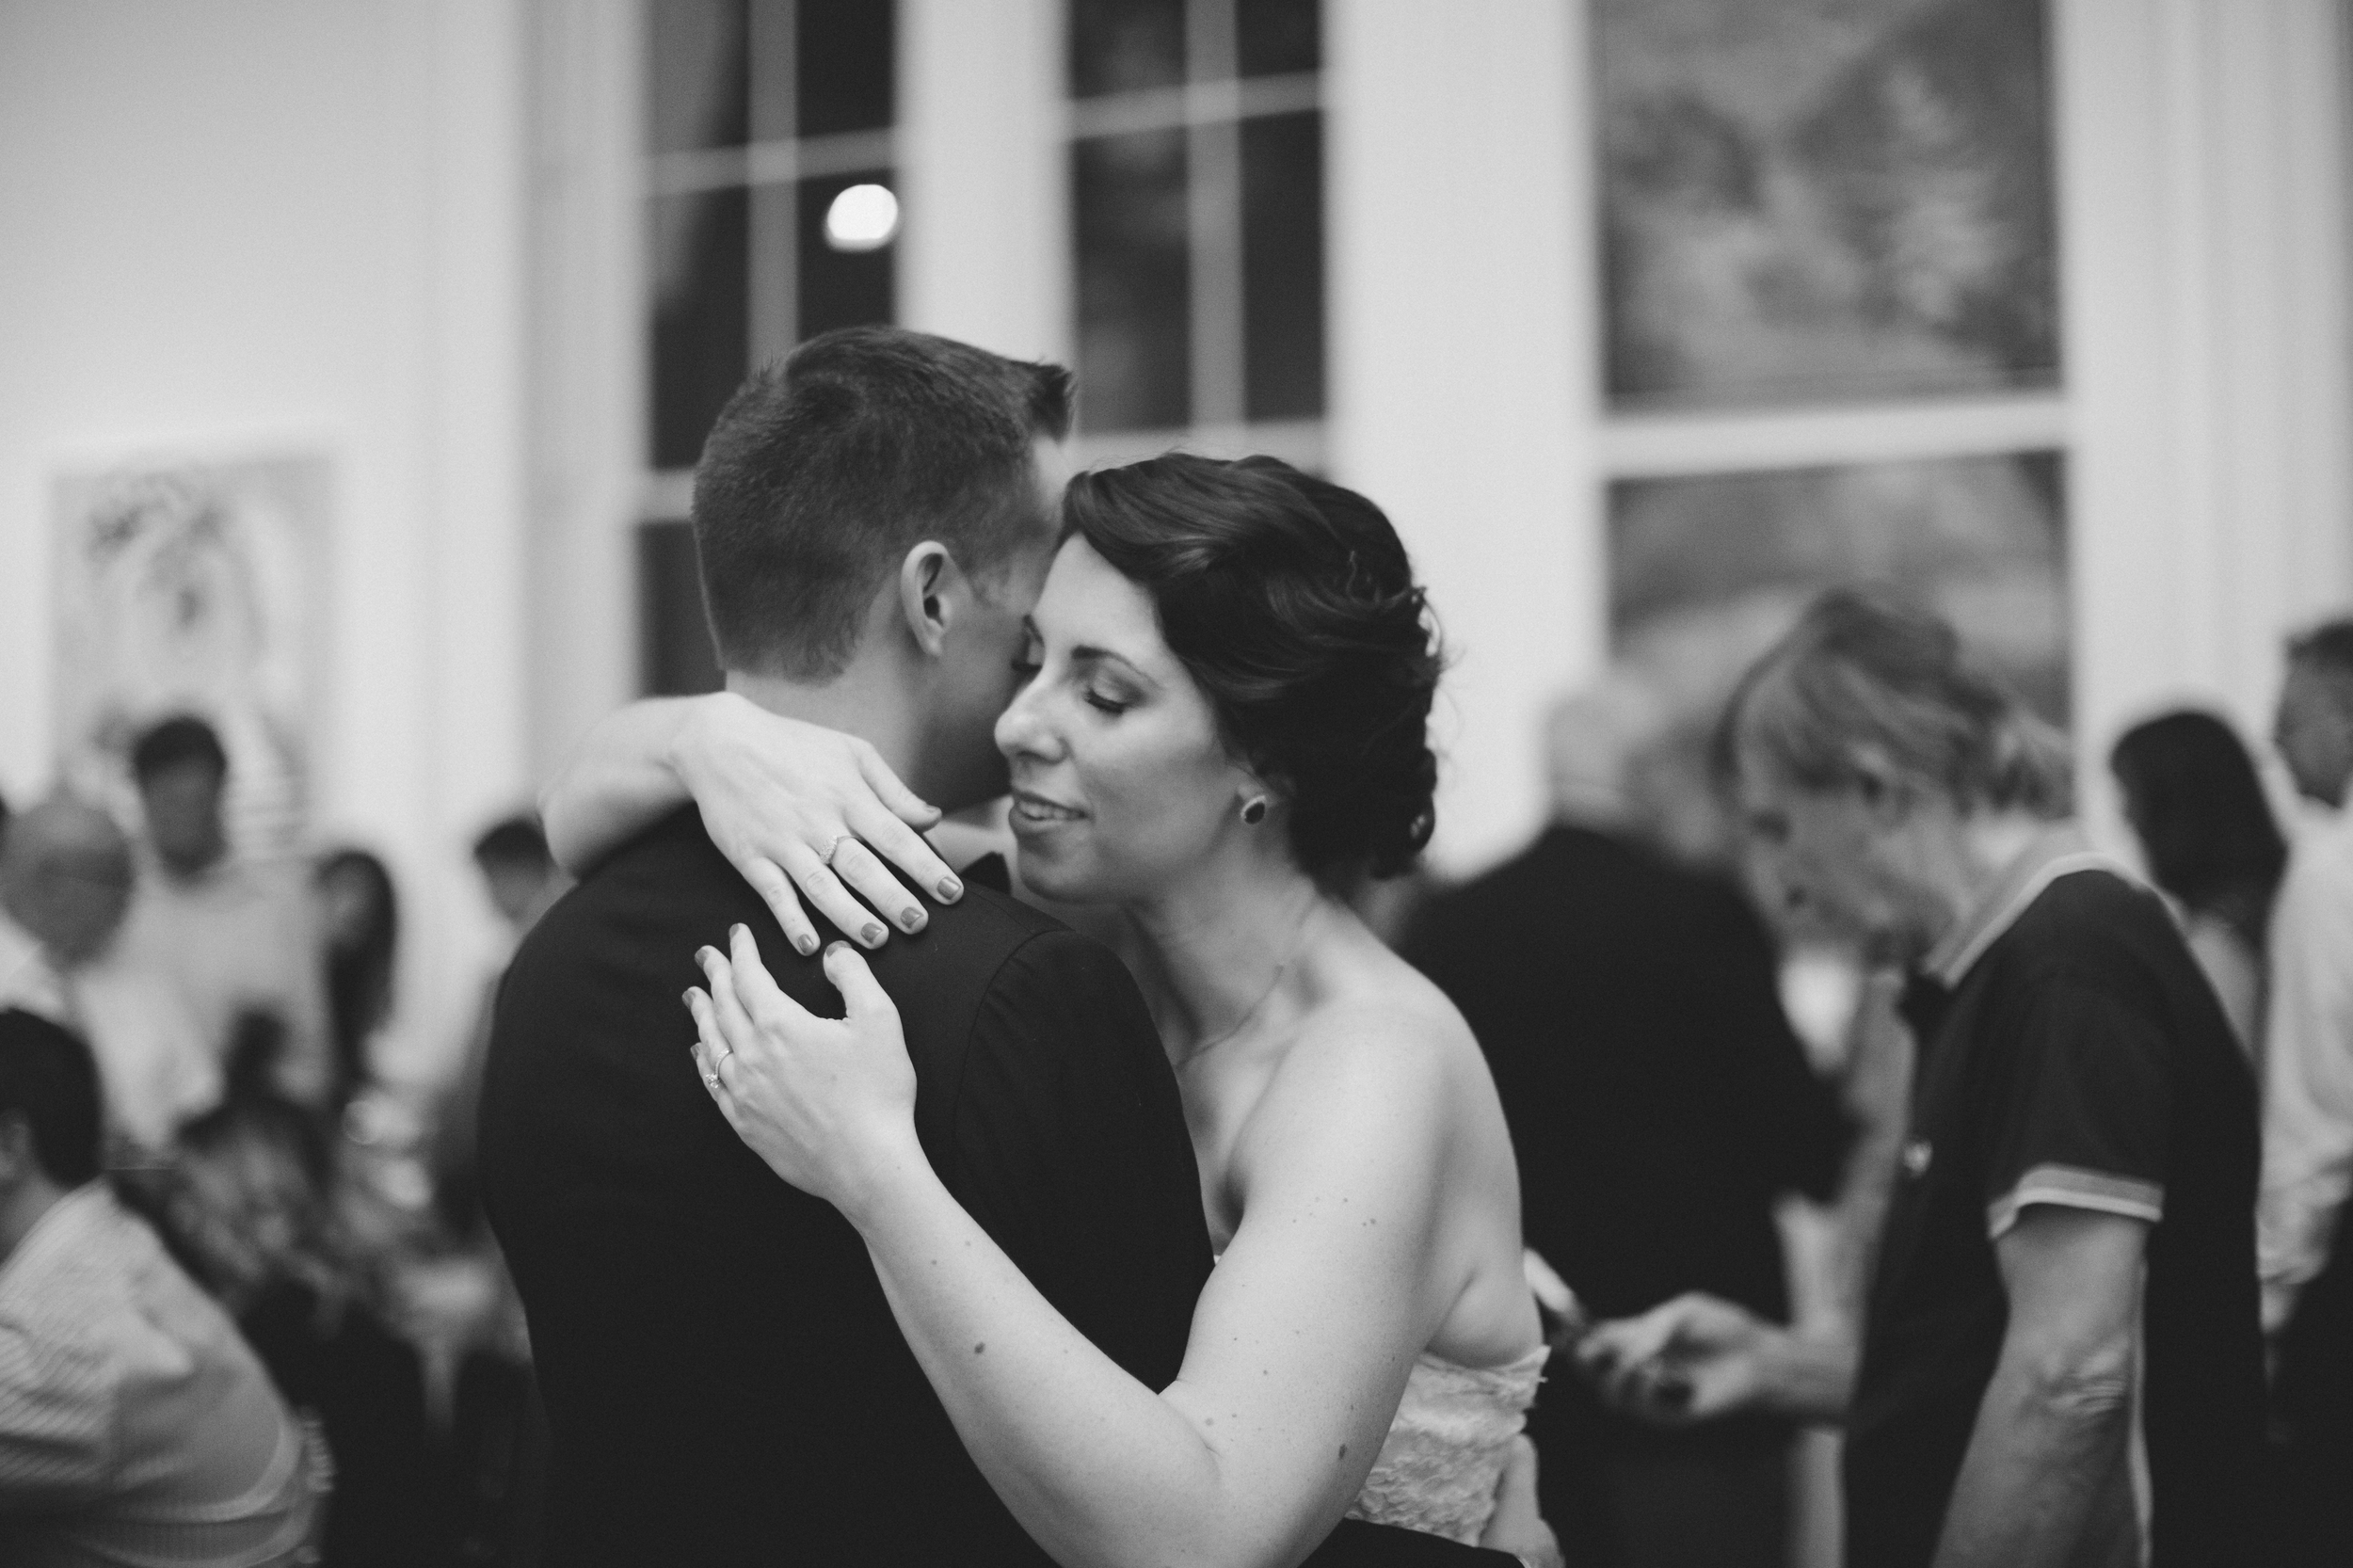 Vness_Photography_Wedding_Photographer_Washington-DC_Fish_Wedding-992.jpg